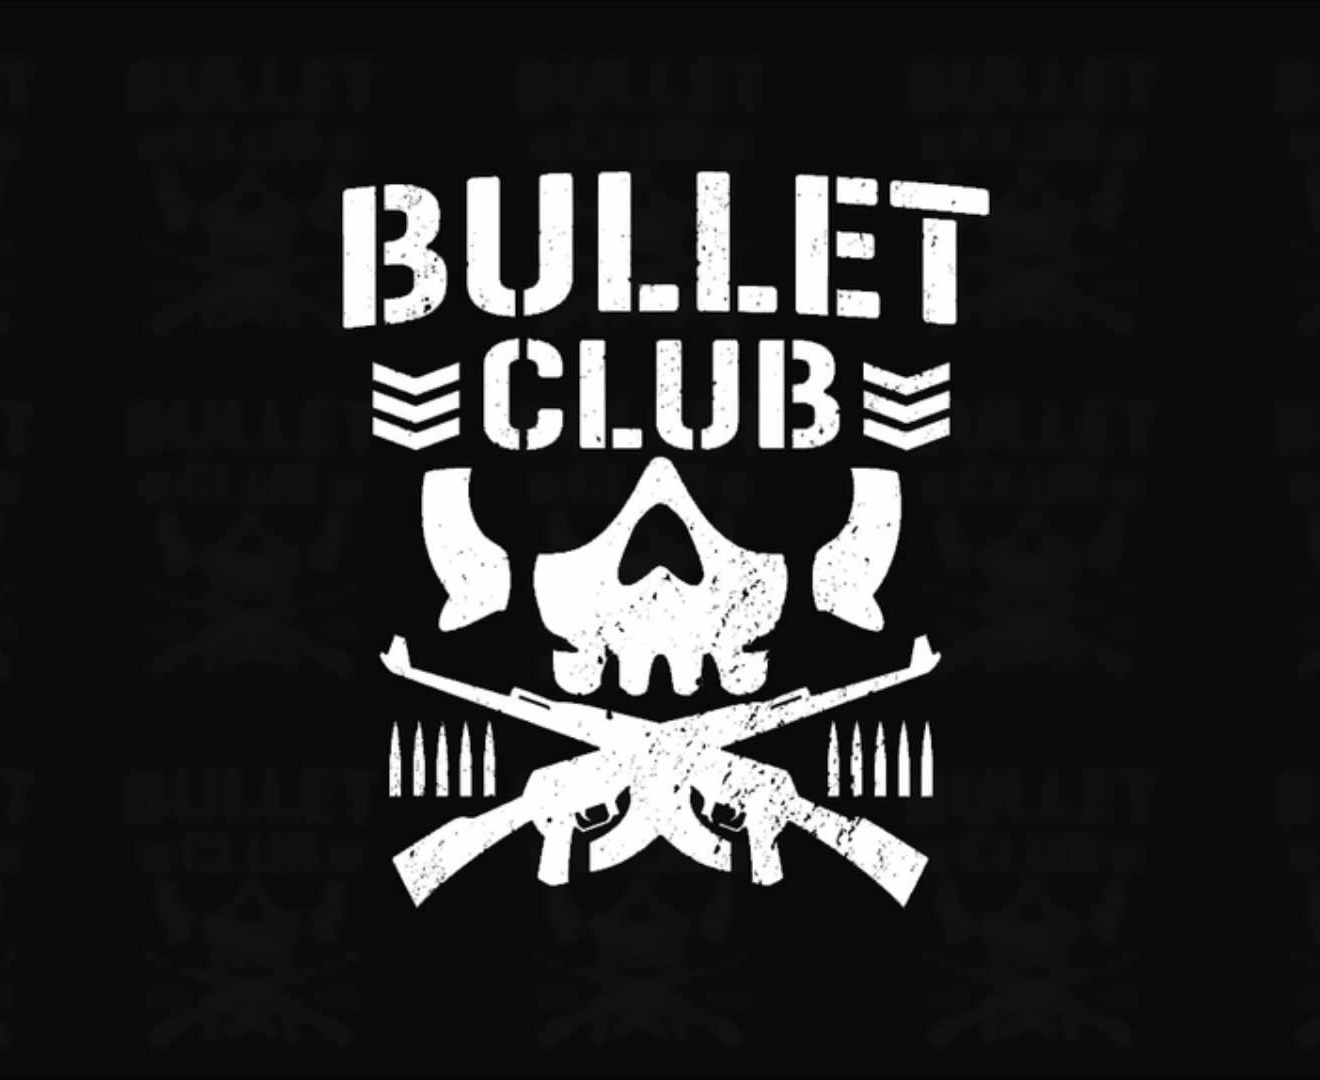 1320x1080 Bullet Club Logo, Bullet Club Symbol, Meaning, History And Evolution